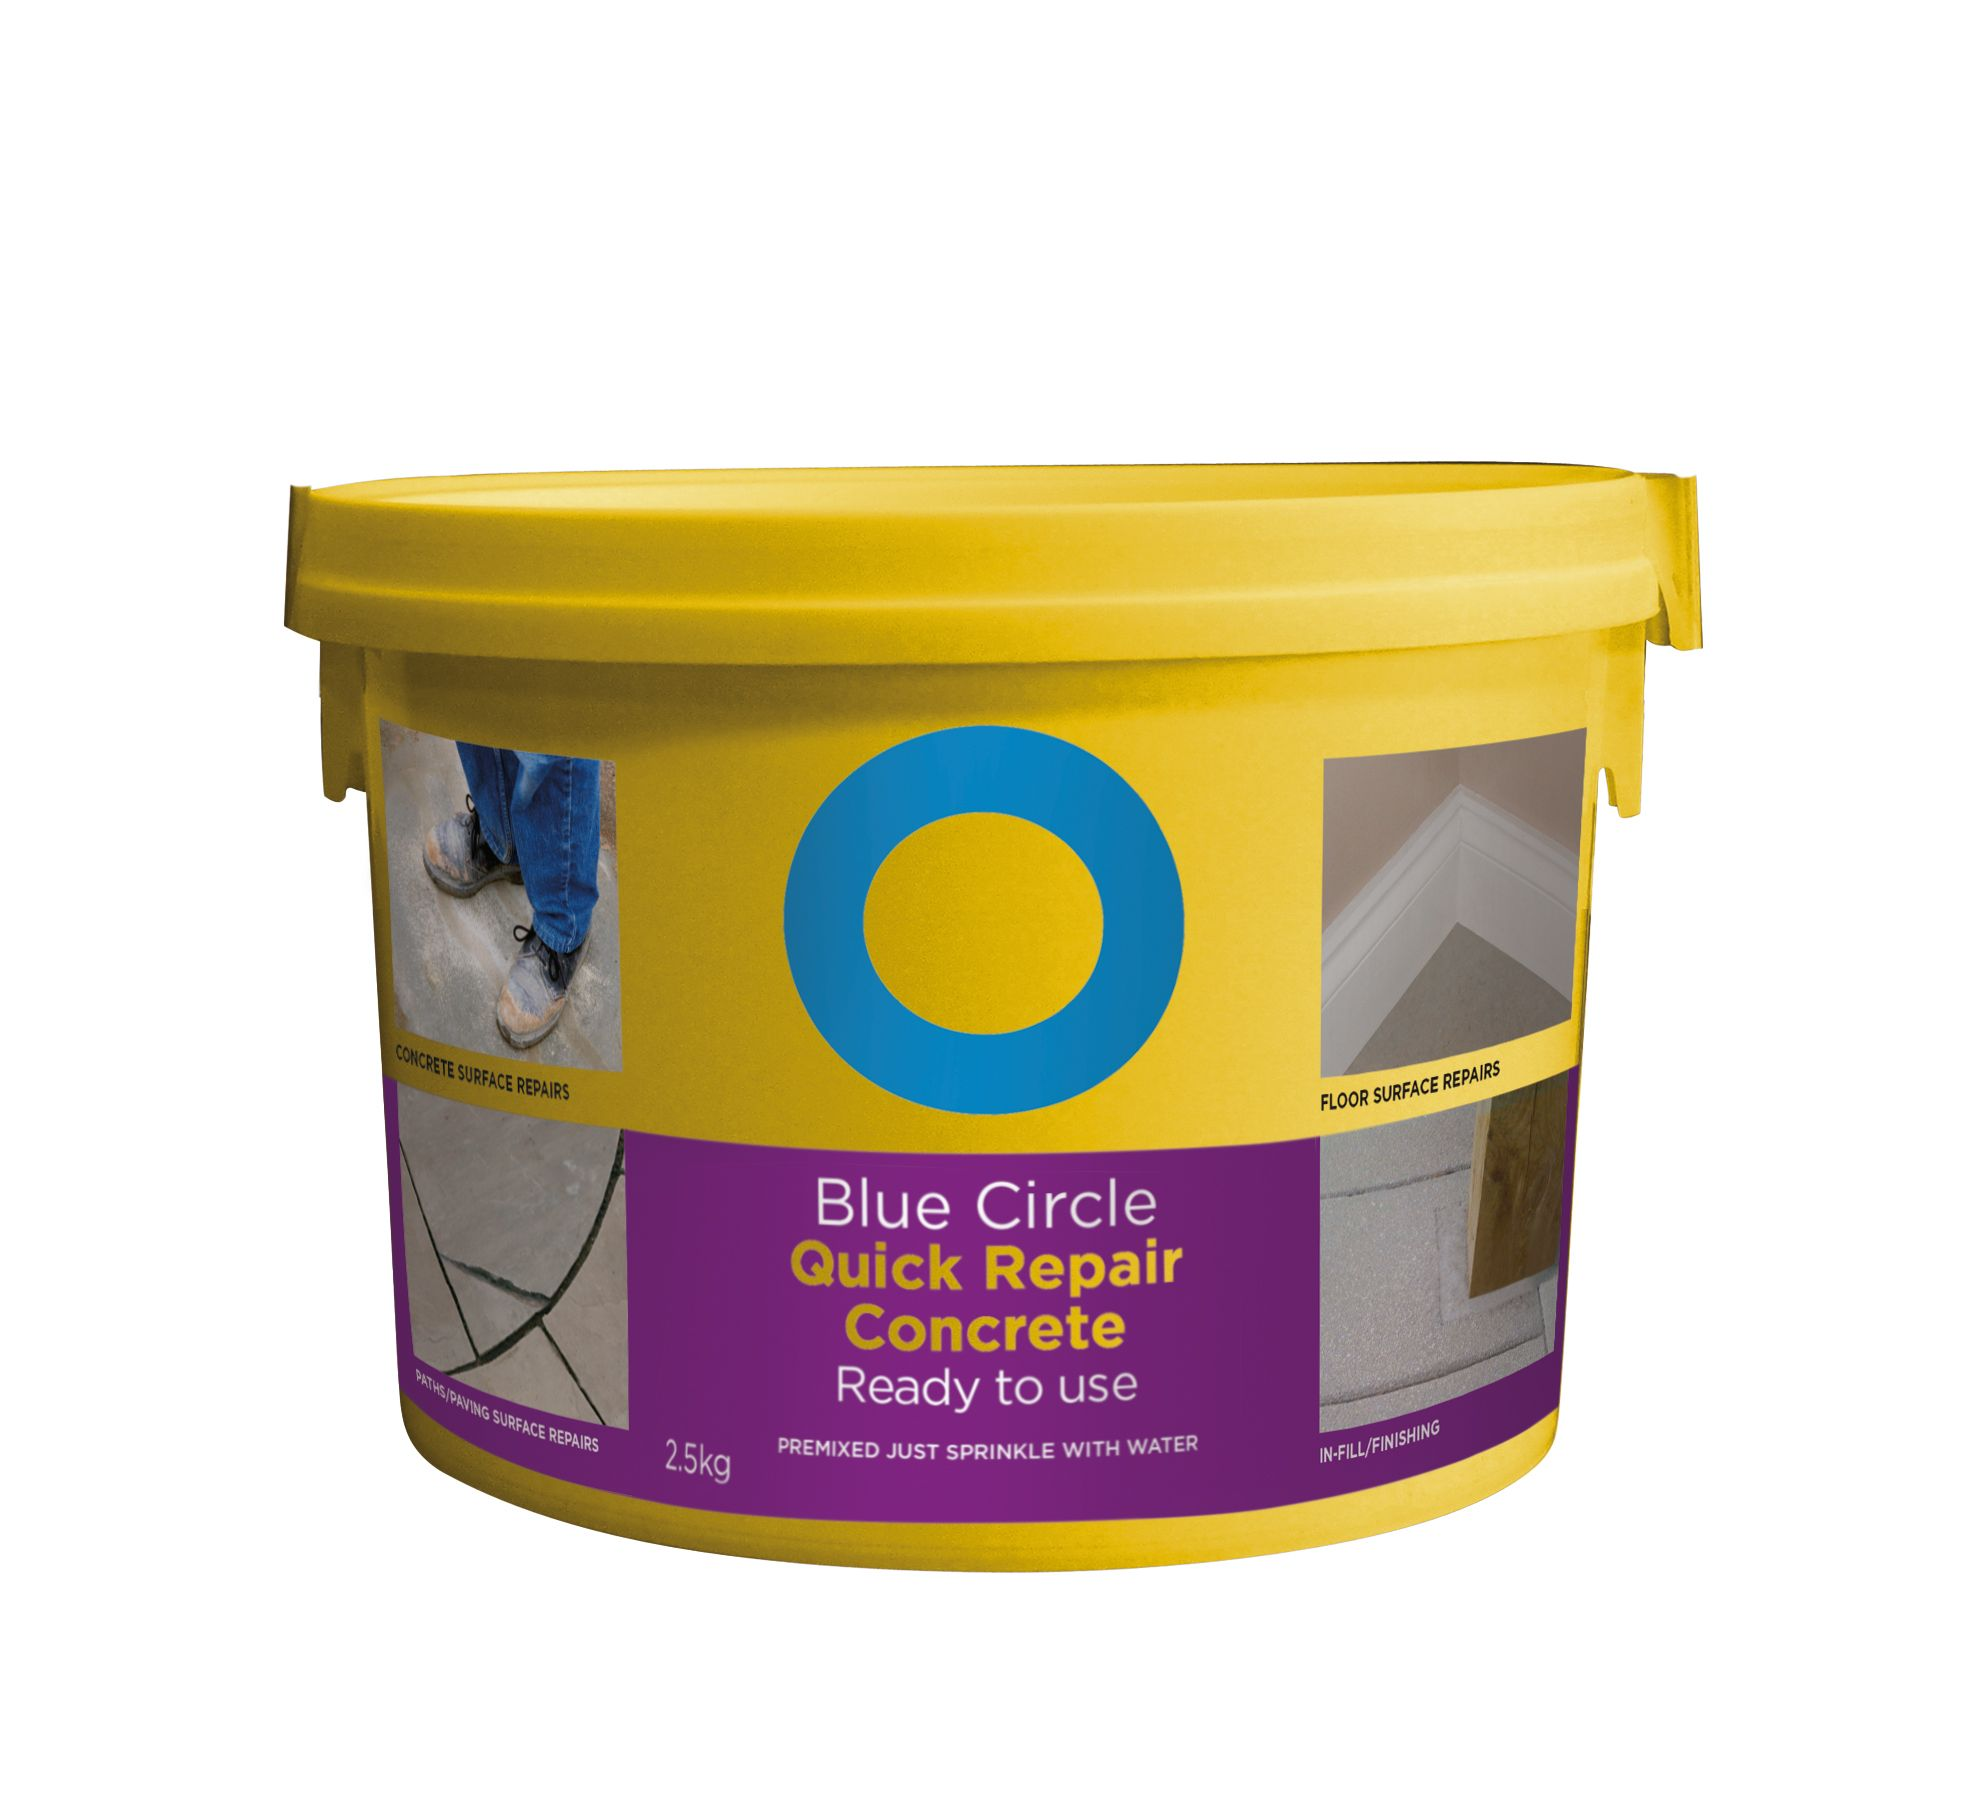 Blue Circle Quick Repair Ready to Use Concrete 25kg Tub